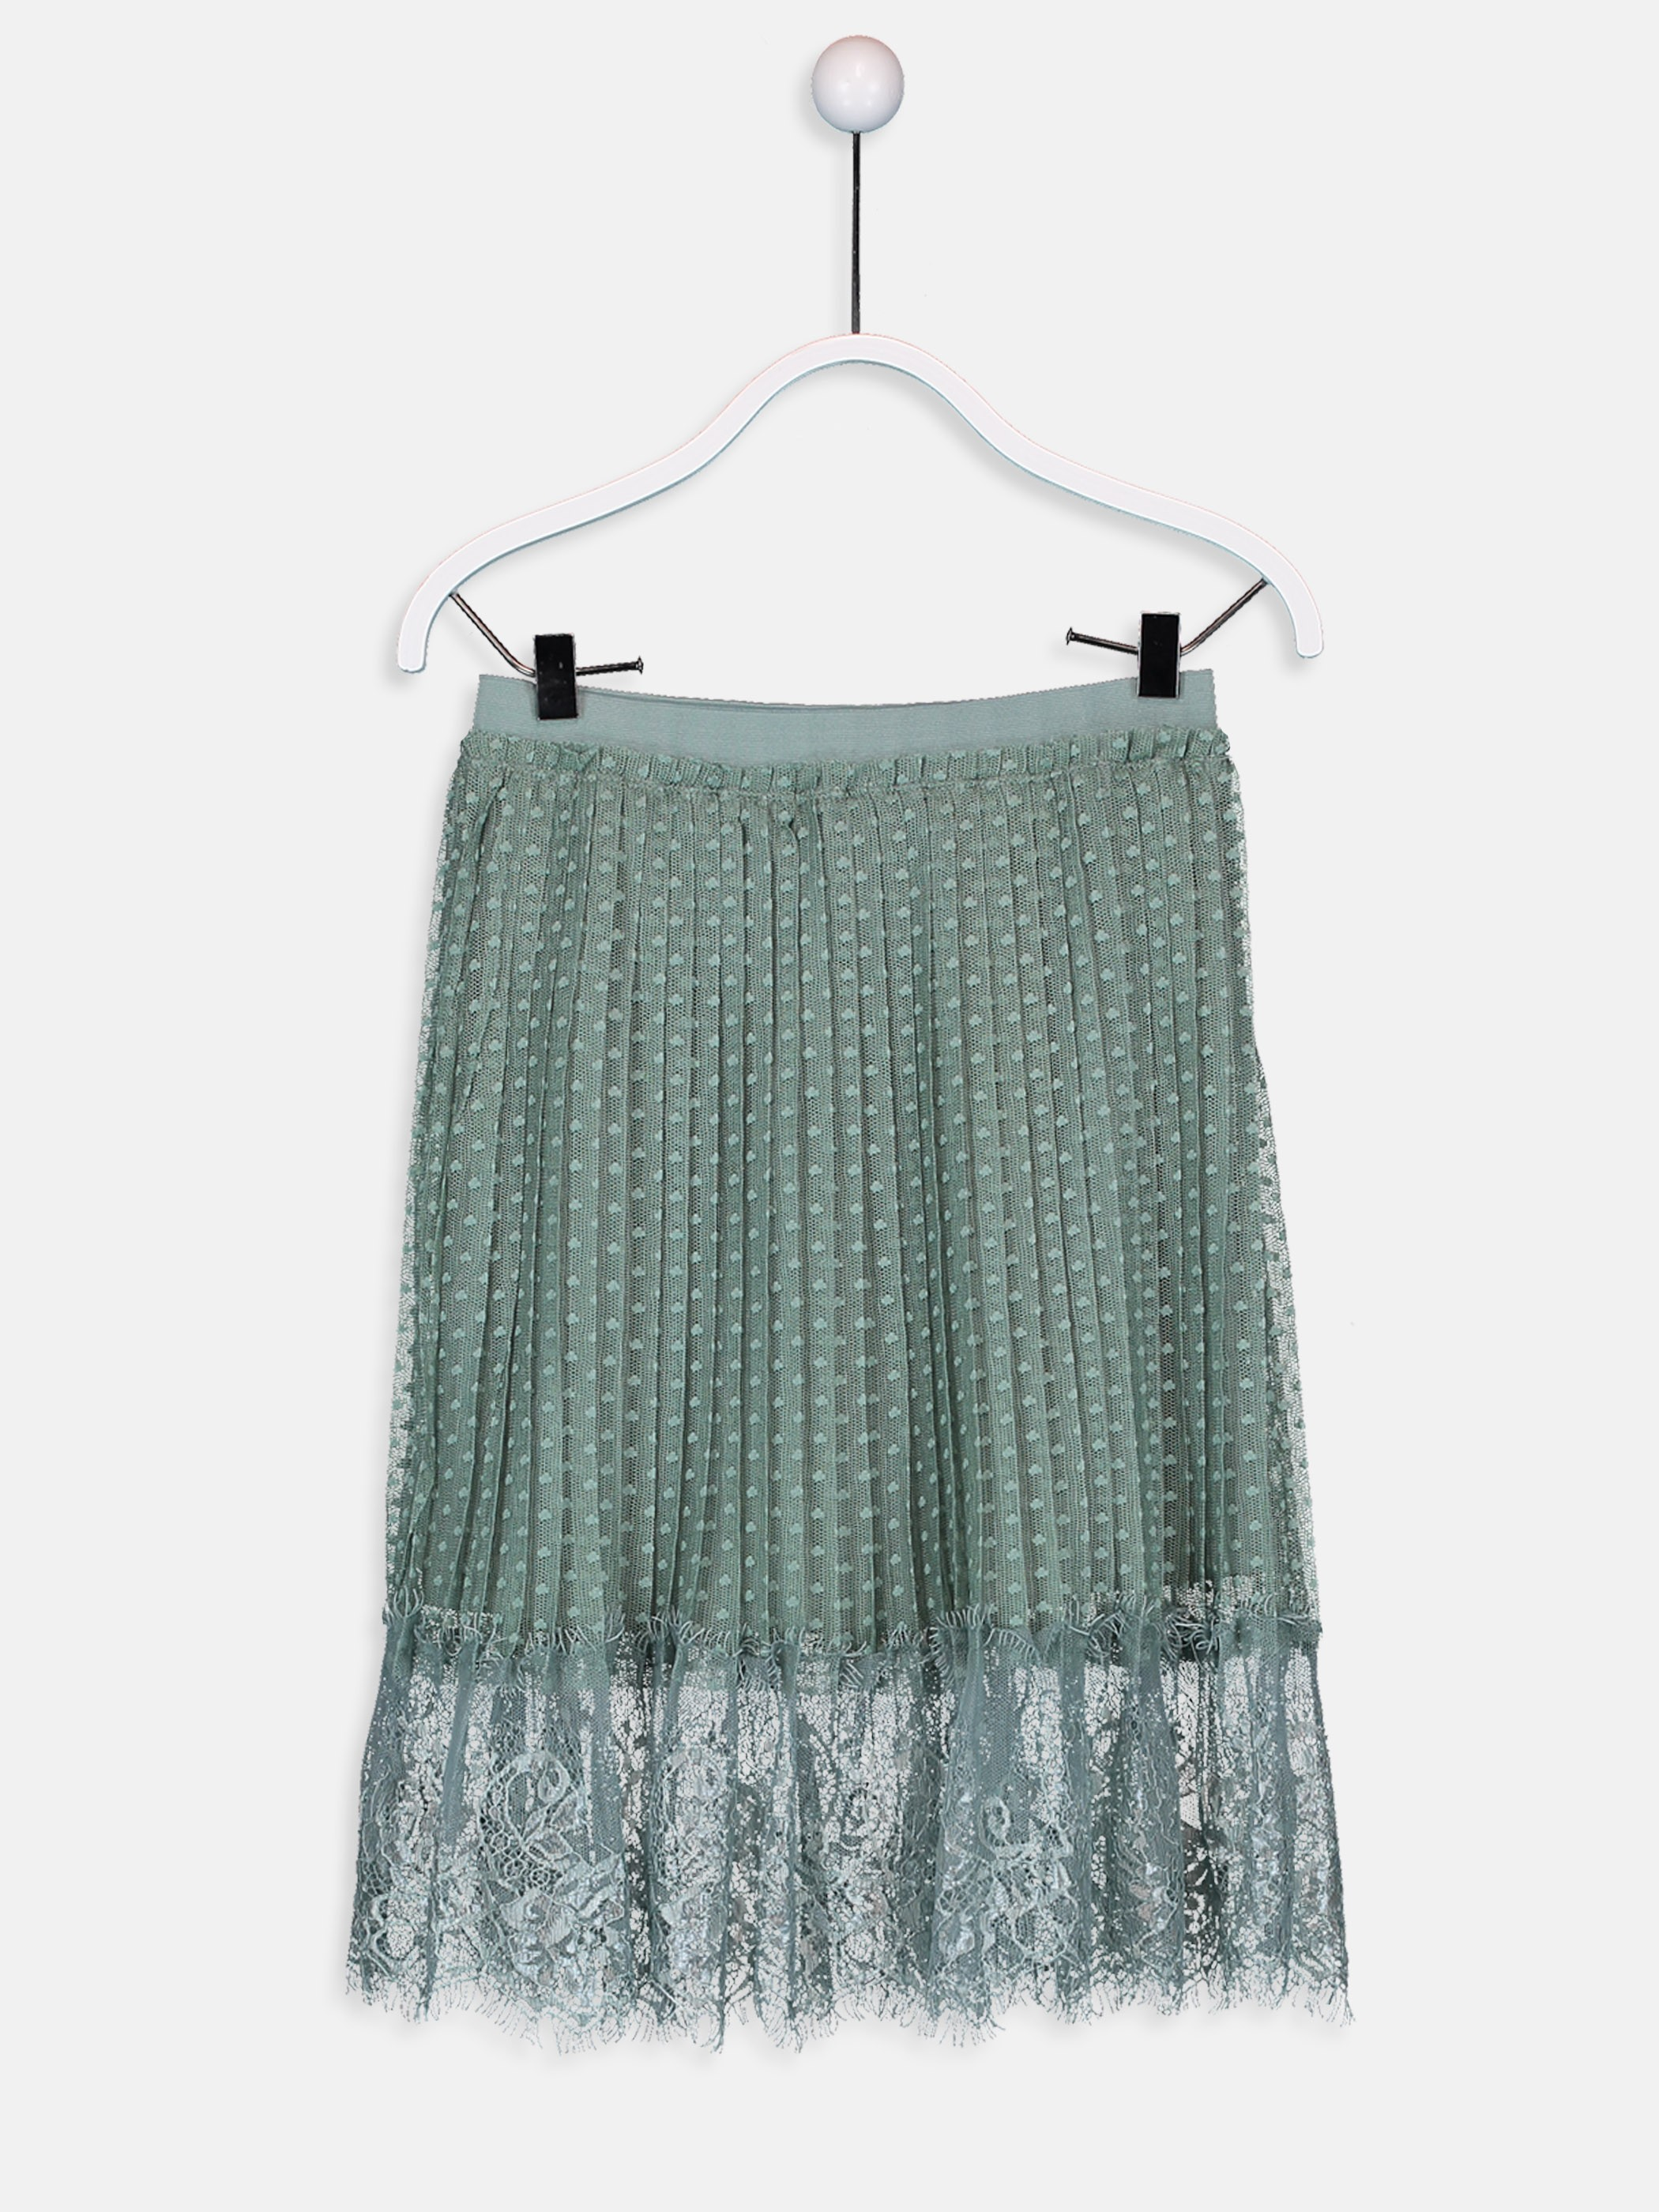 GREEN - Girl's's Pleated Tulle Skirt Mother and Daughter Matching - 9WN280Z4